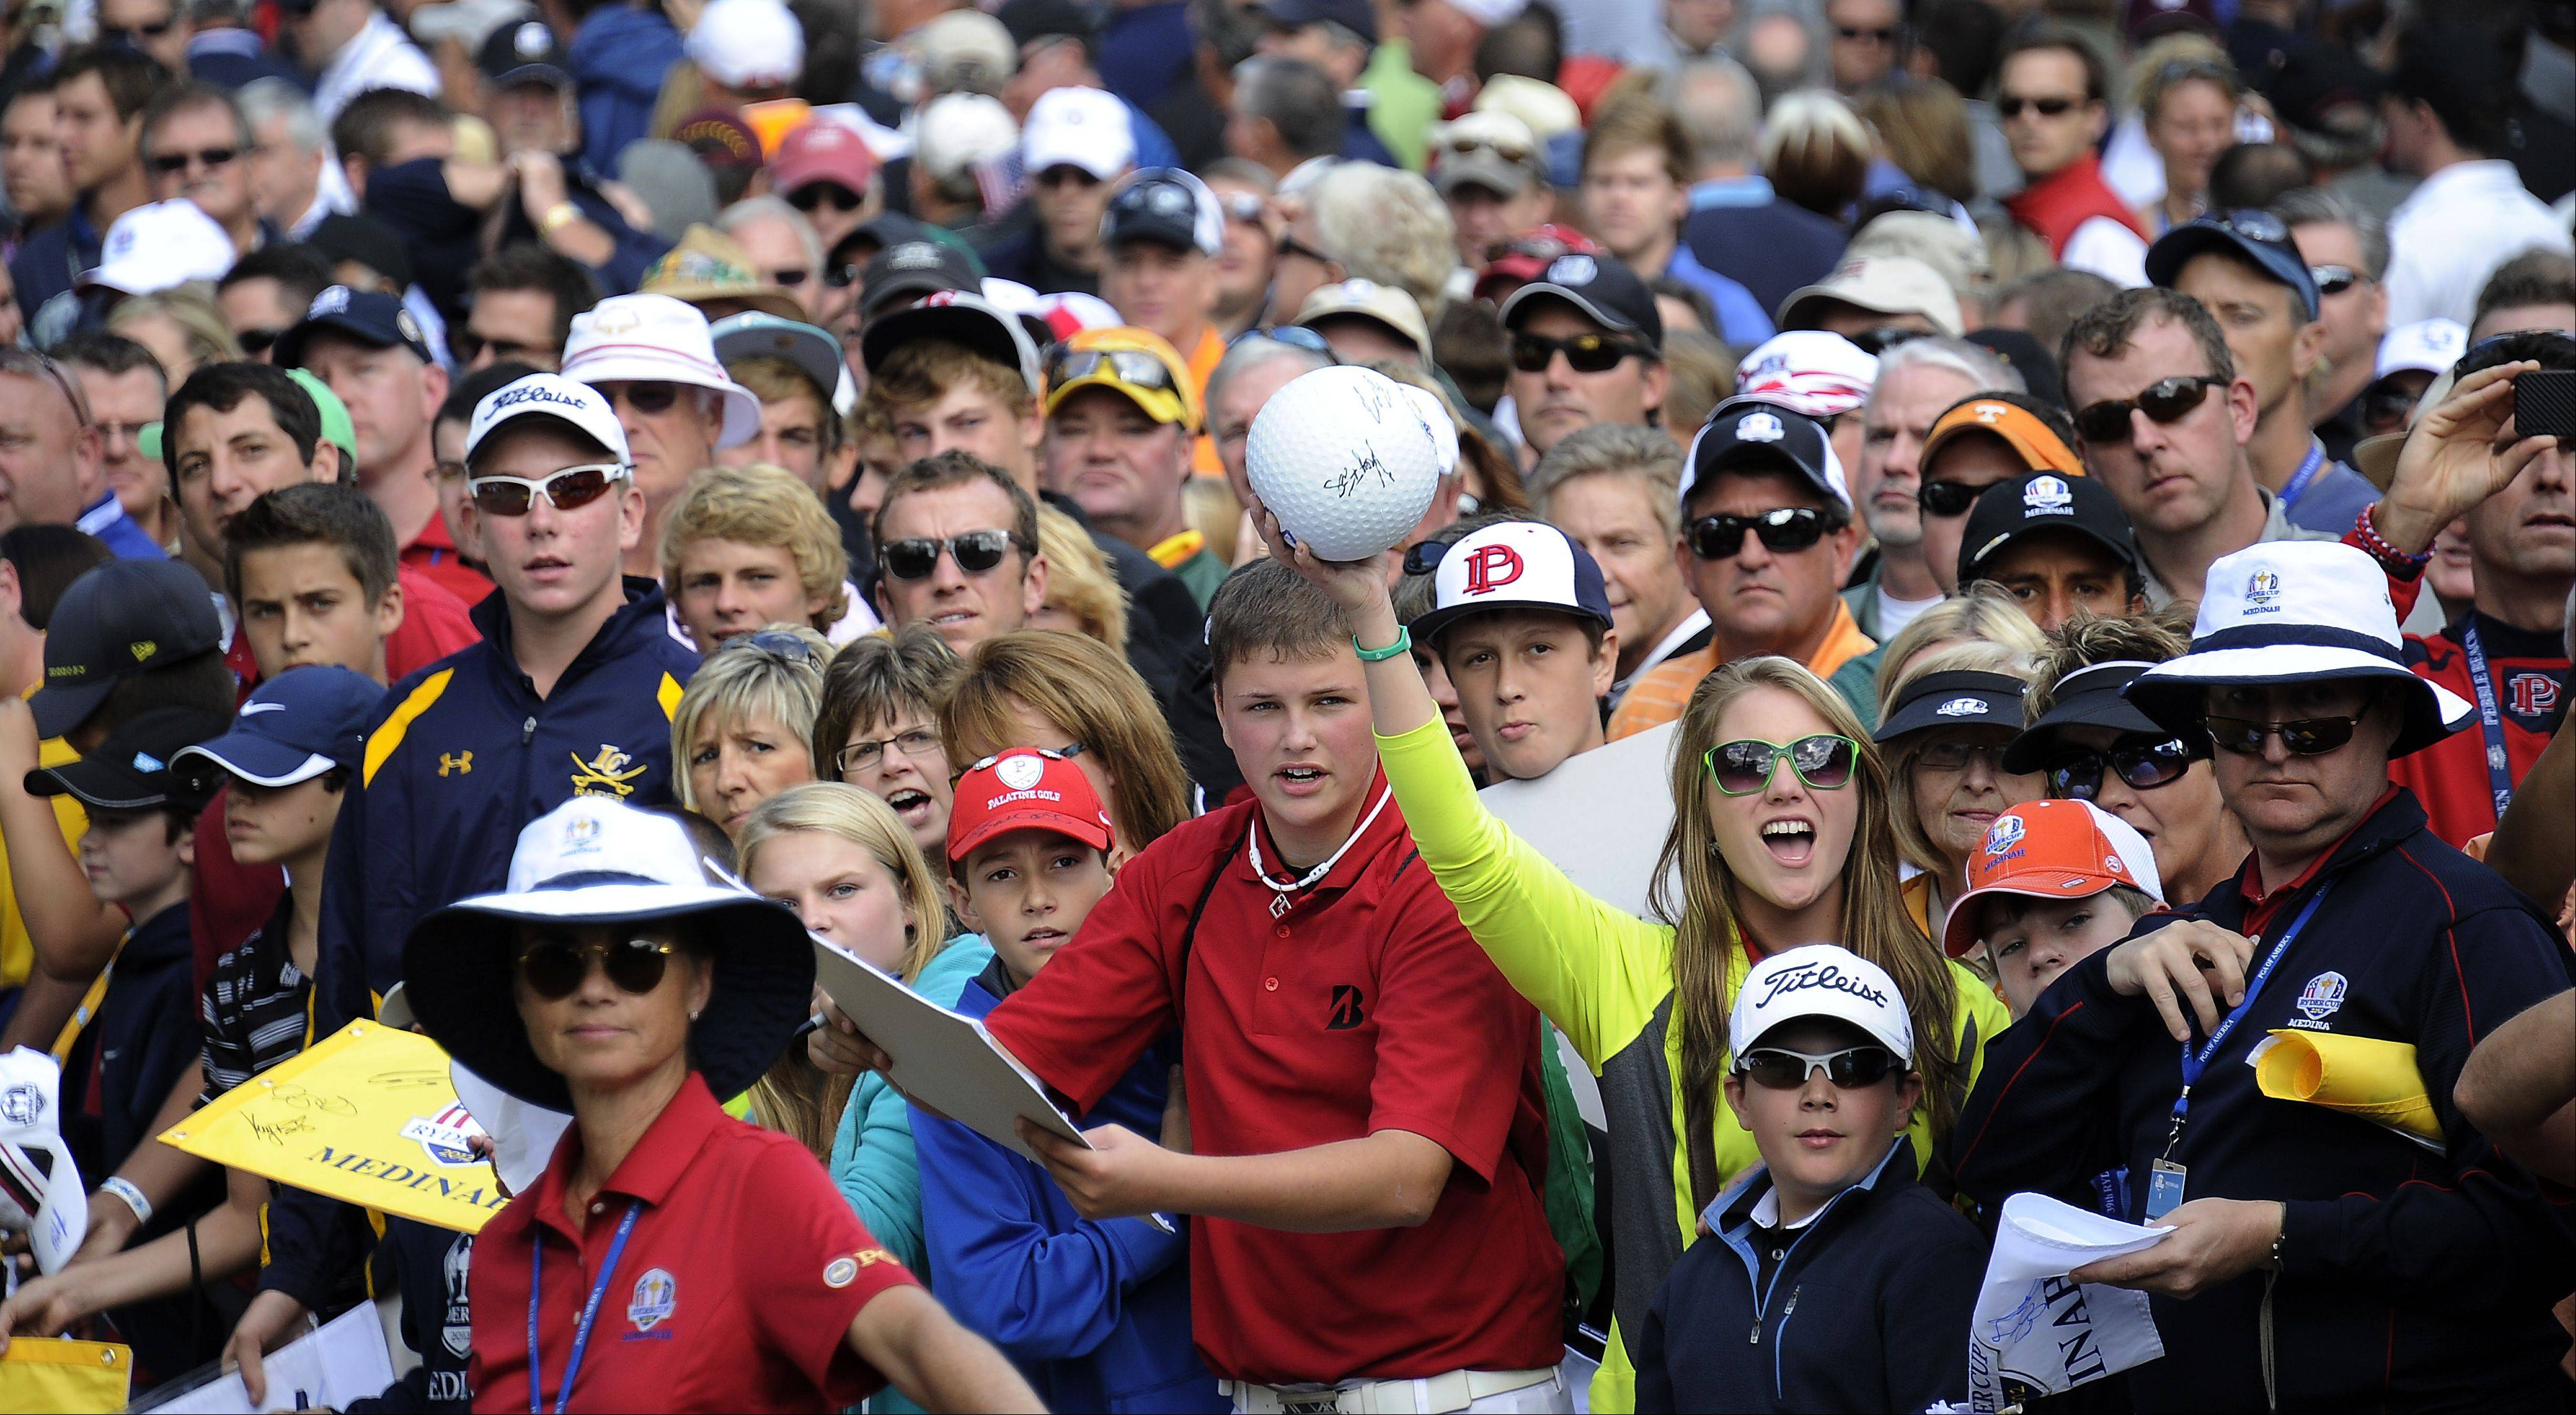 Screaming fans look to the golfers during the opening ceremonies of the Ryder Cup in Medinah on Thursday for autographs.